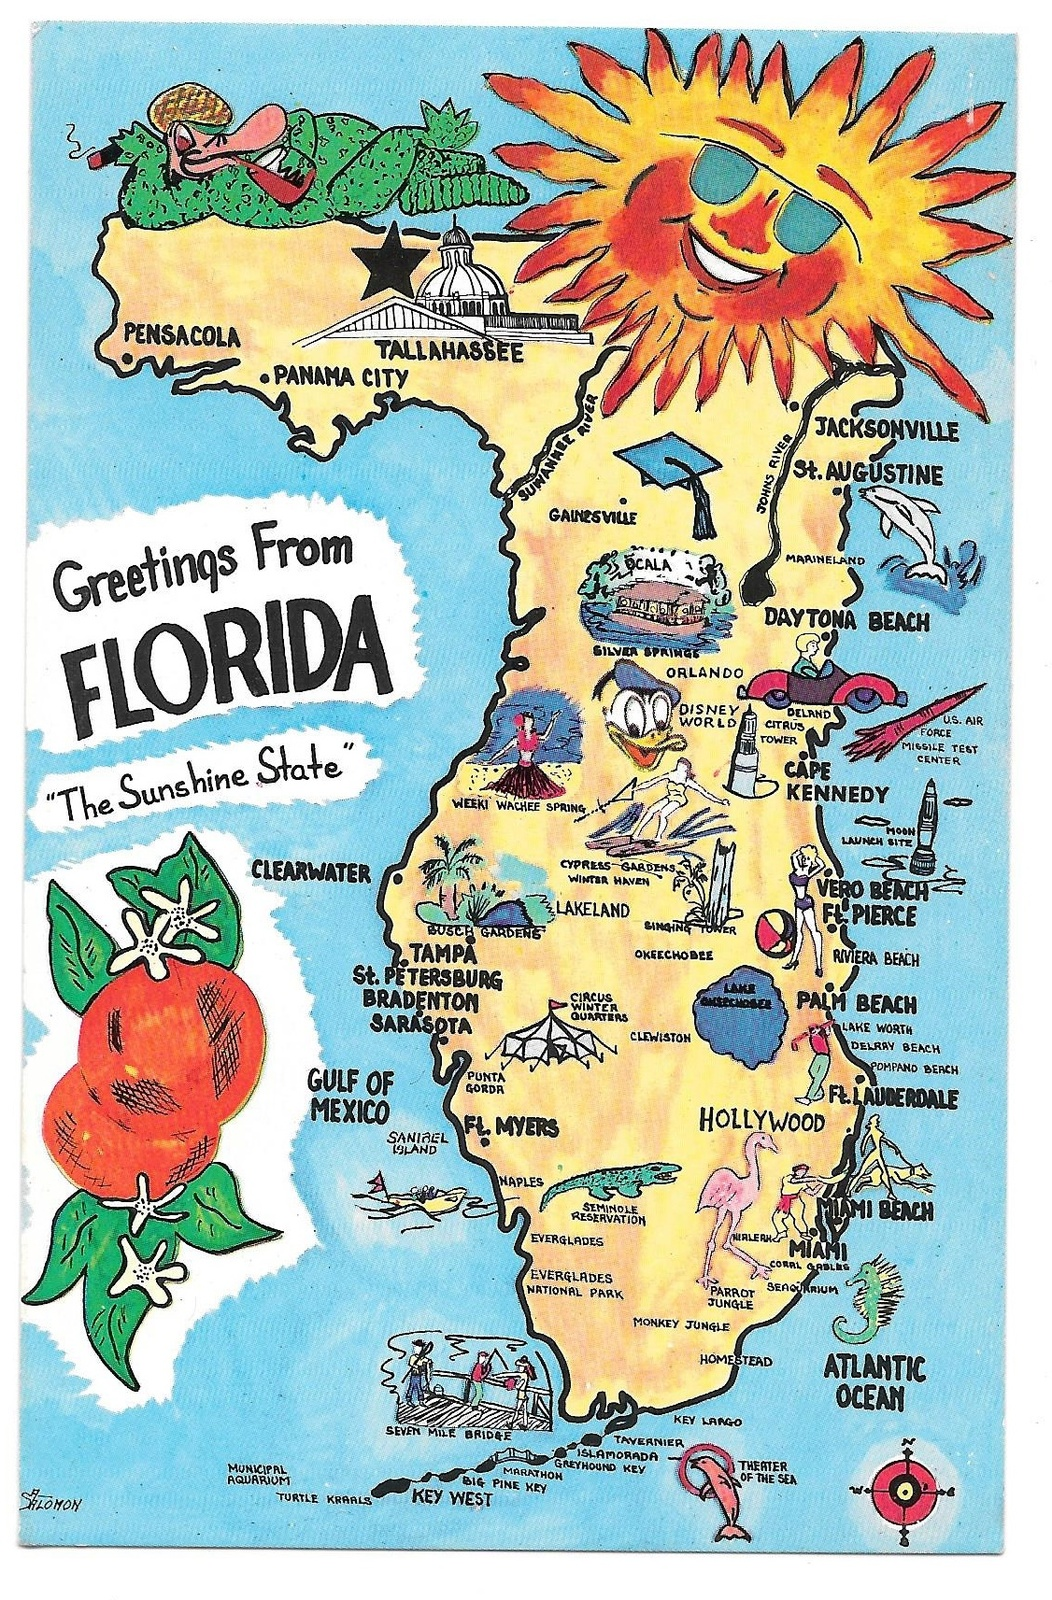 Florida Illustrated Map Landmarks Cities FL And  Similar Items - Florida map beach